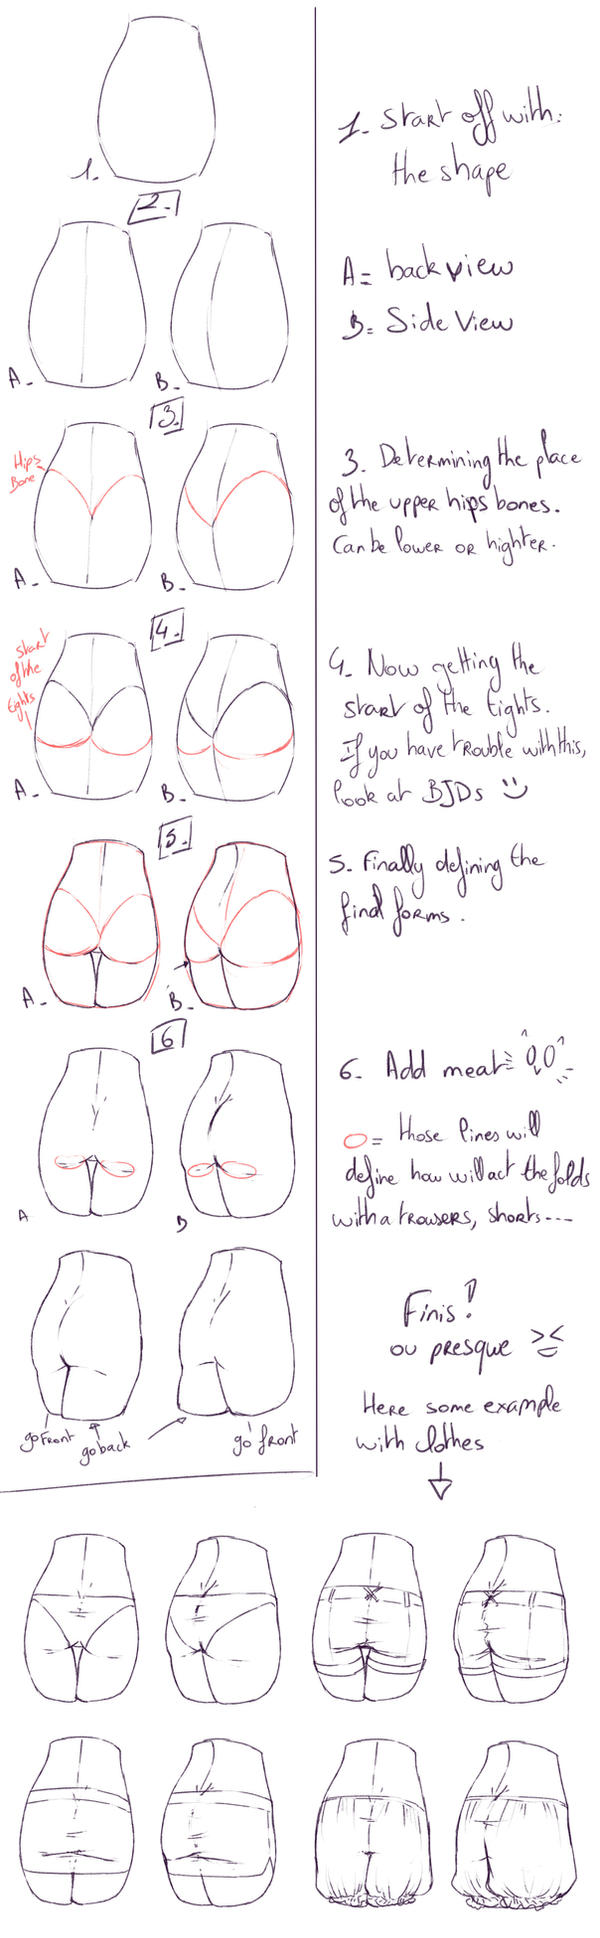 how to draw female buttocks